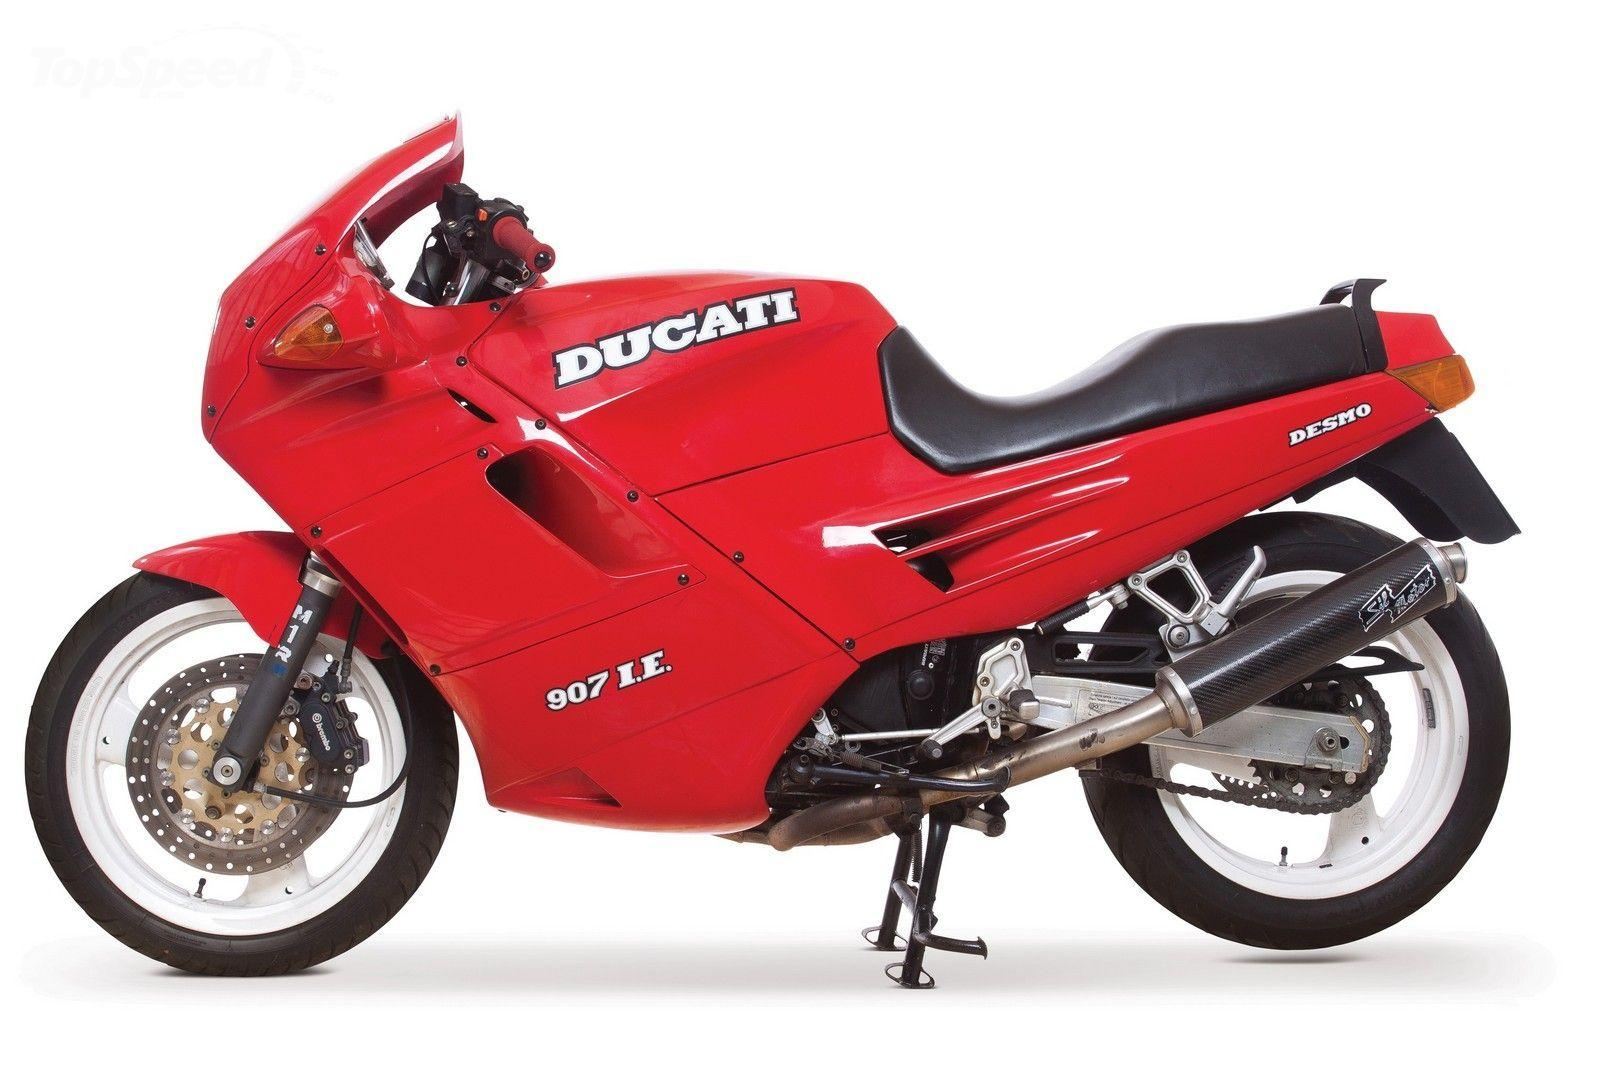 Ducati 907 i.e. 1991 wallpapers #11896